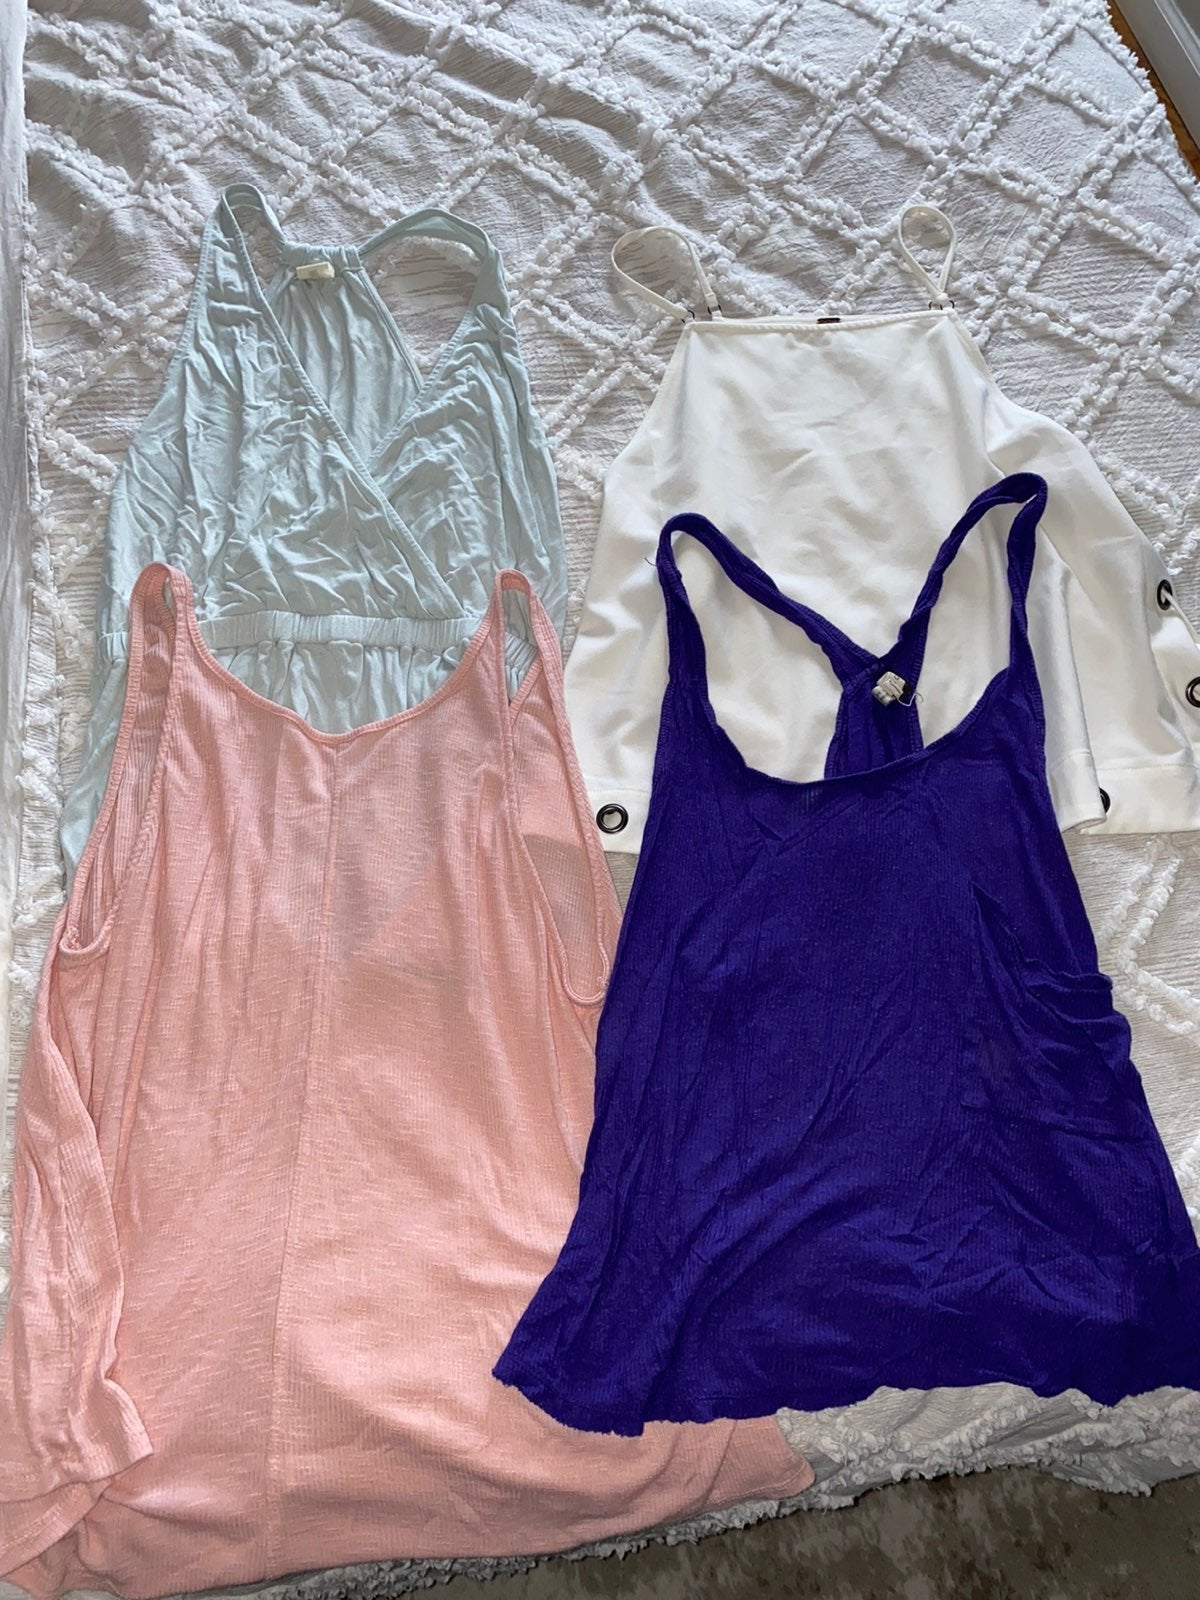 Free People/We Are the Free tank bundle